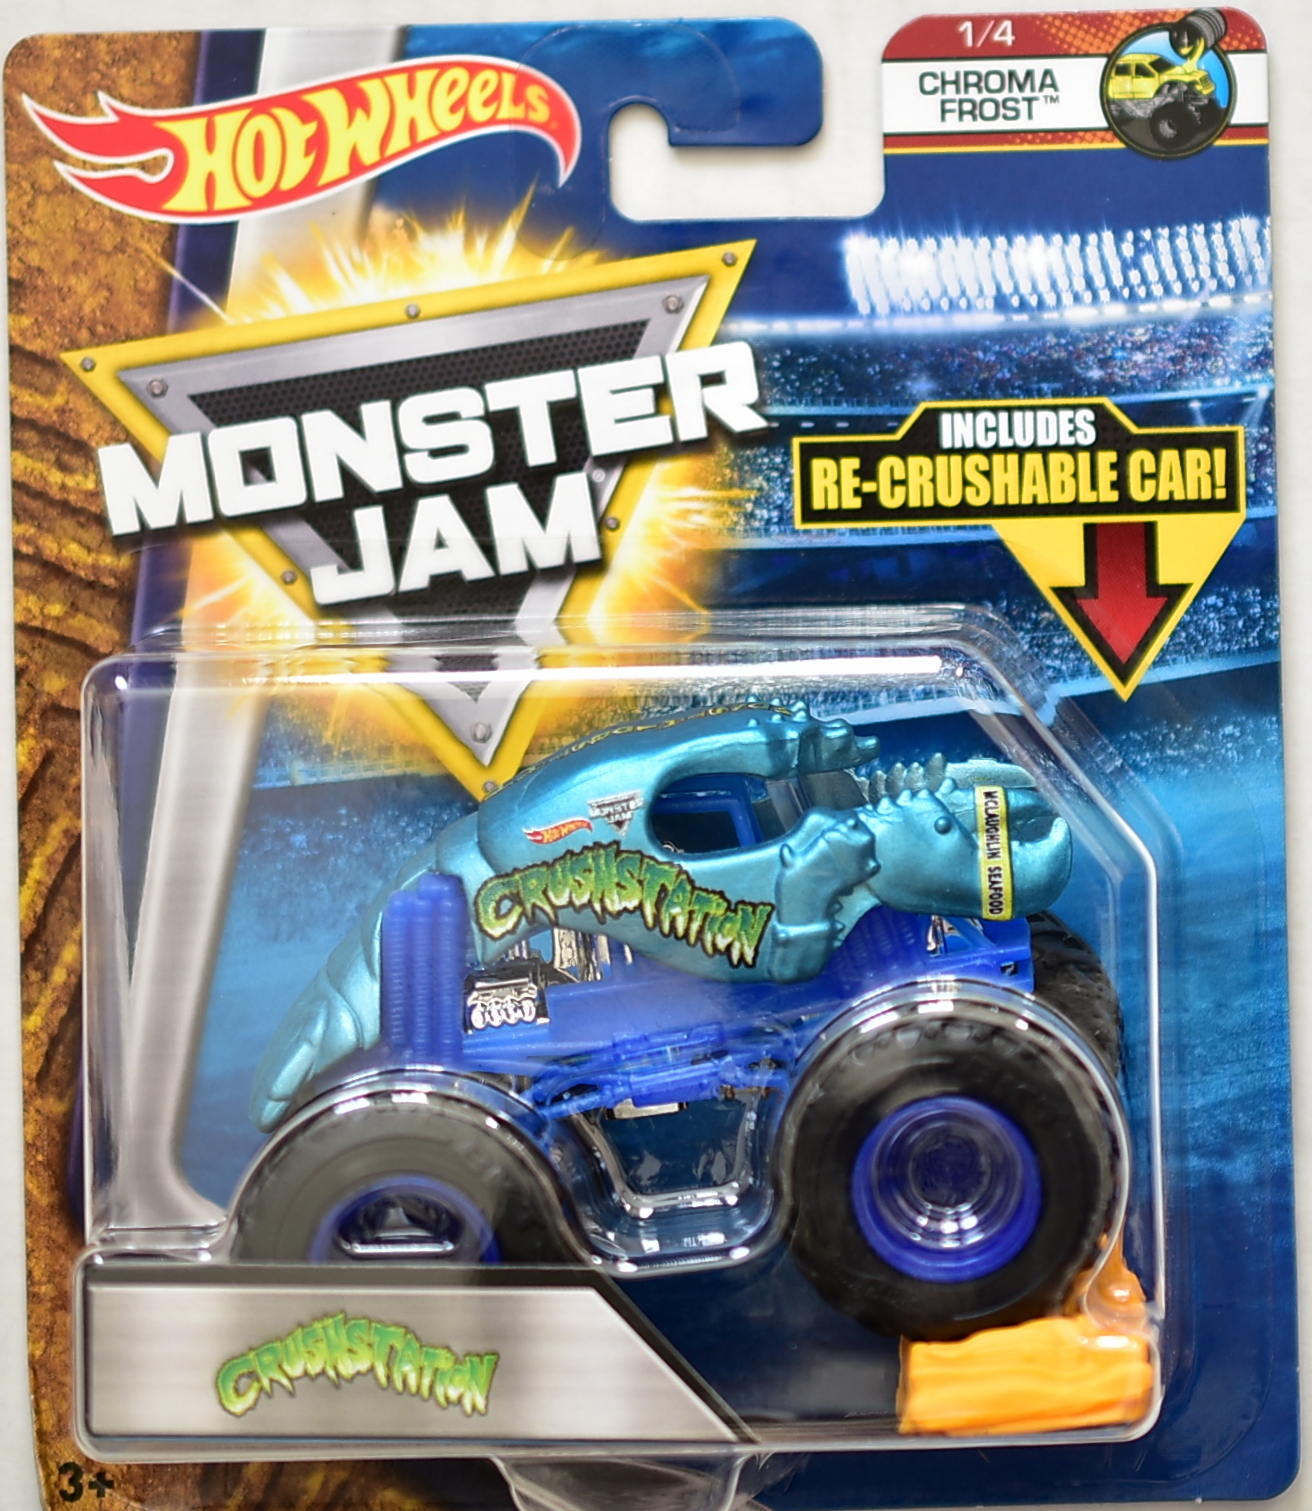 HOT WHEELS 2017 MONSTER JAM W/ RE-CRUSHABLE CAR CRUSHSTATION CHROMA FROST